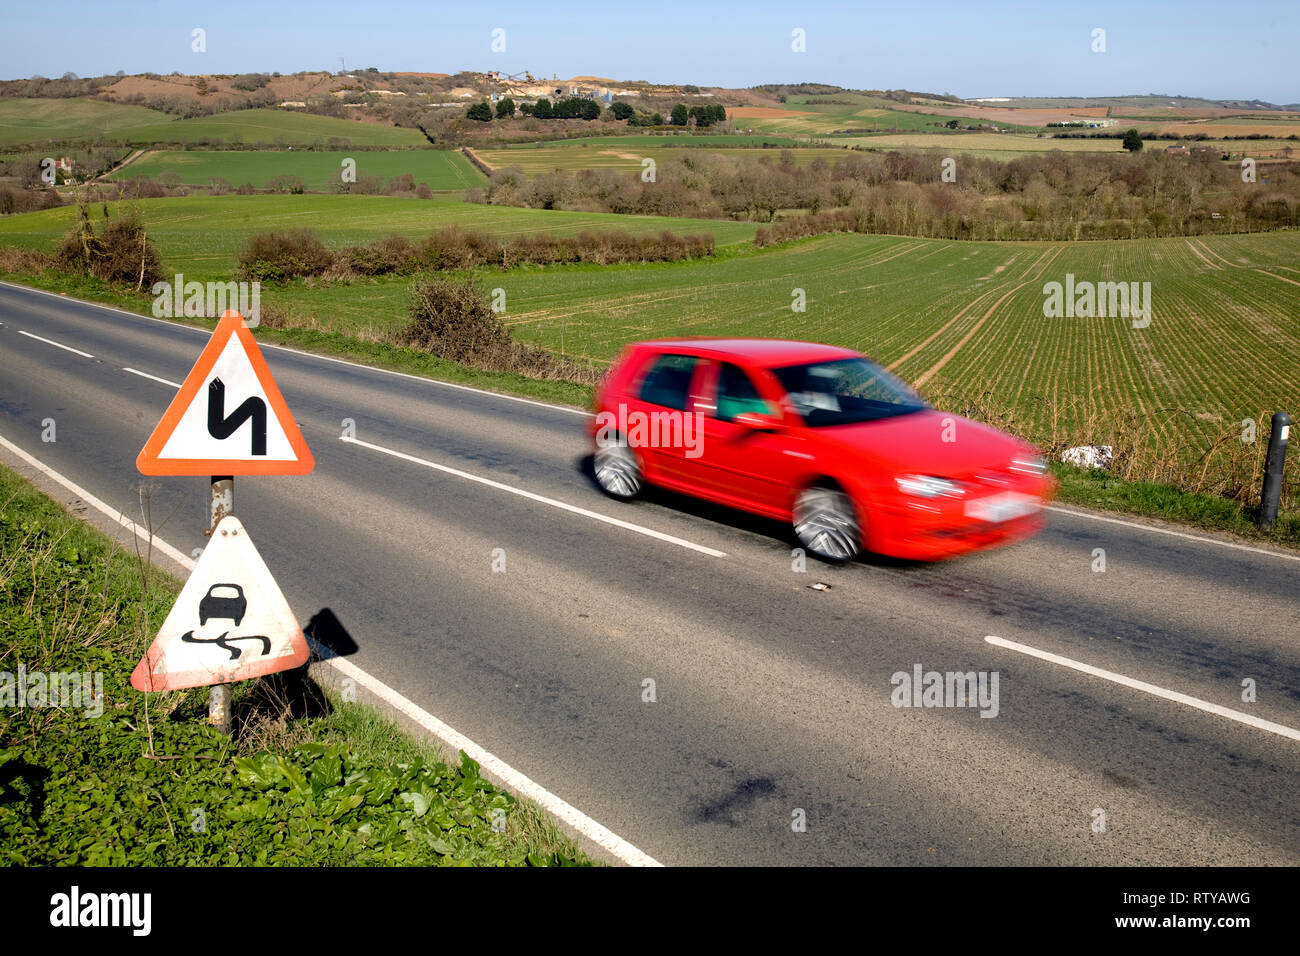 Traffic, Road Signs, Road Markings, A3020, Blackwater > Rookely > Godshill, Isle of Wight, England, UK, a - Stock Image